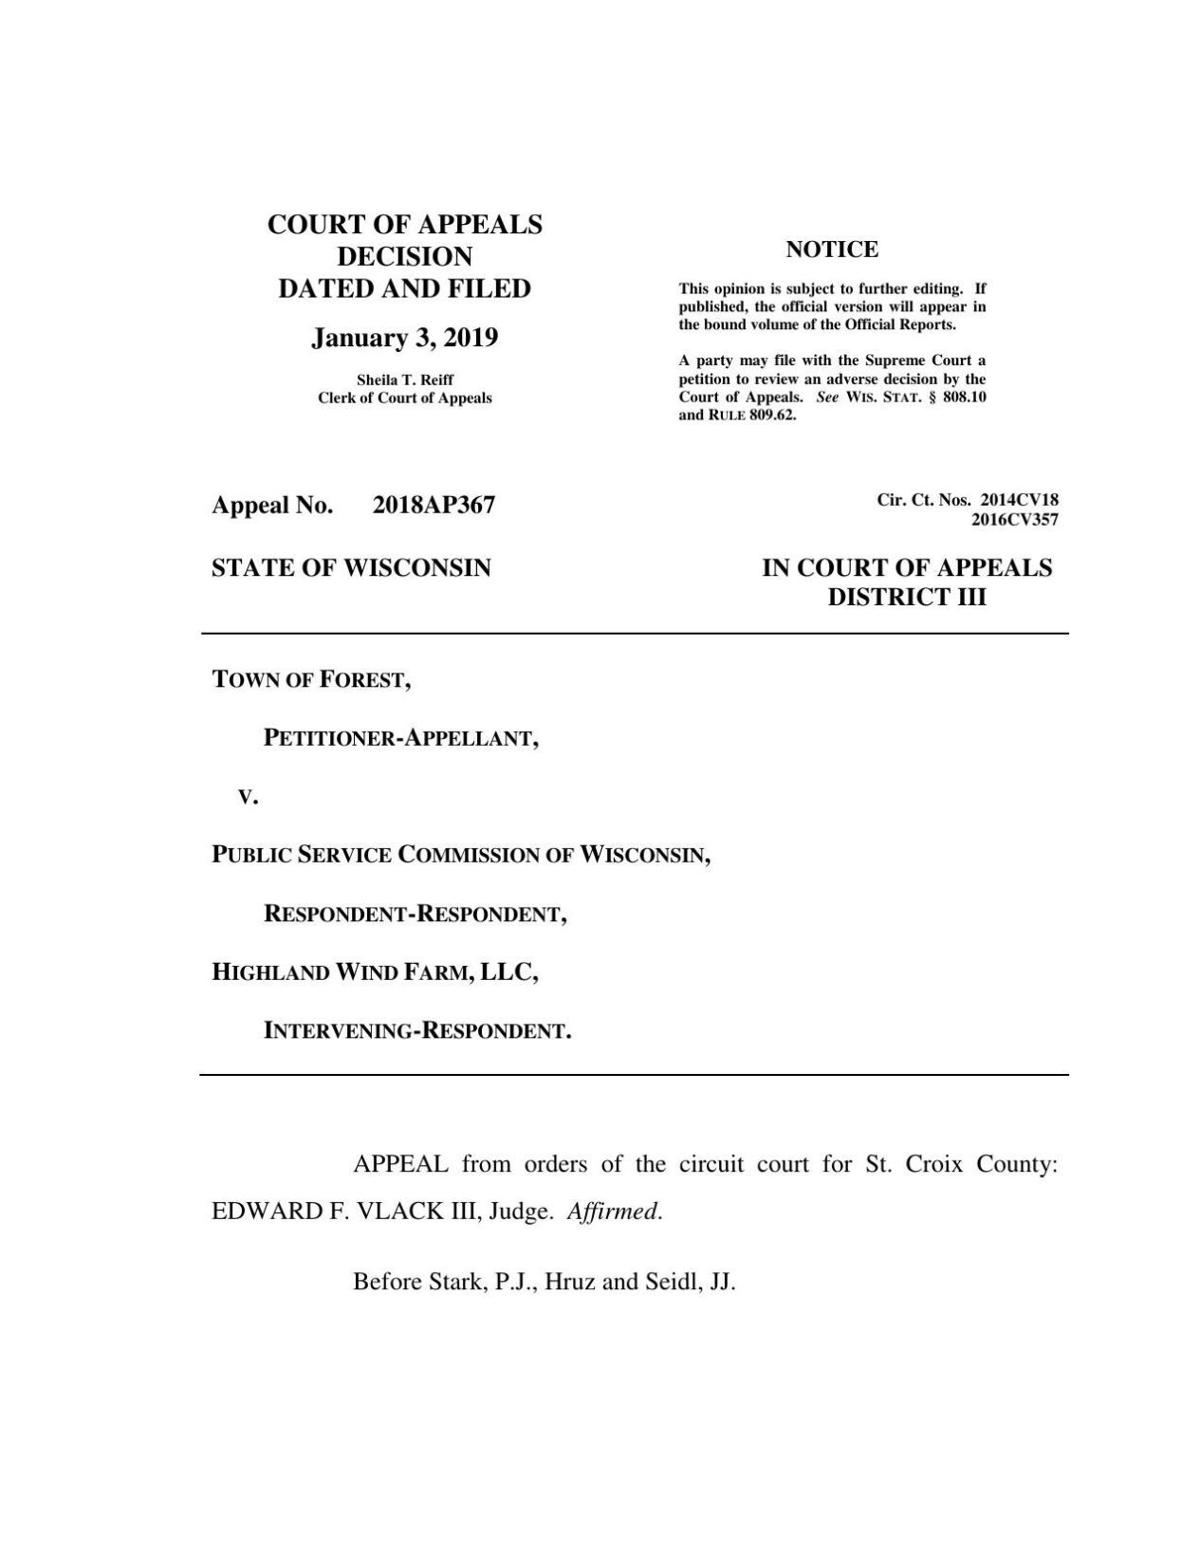 Court of Appeals decision on Town of Forest v. Public Service Commission